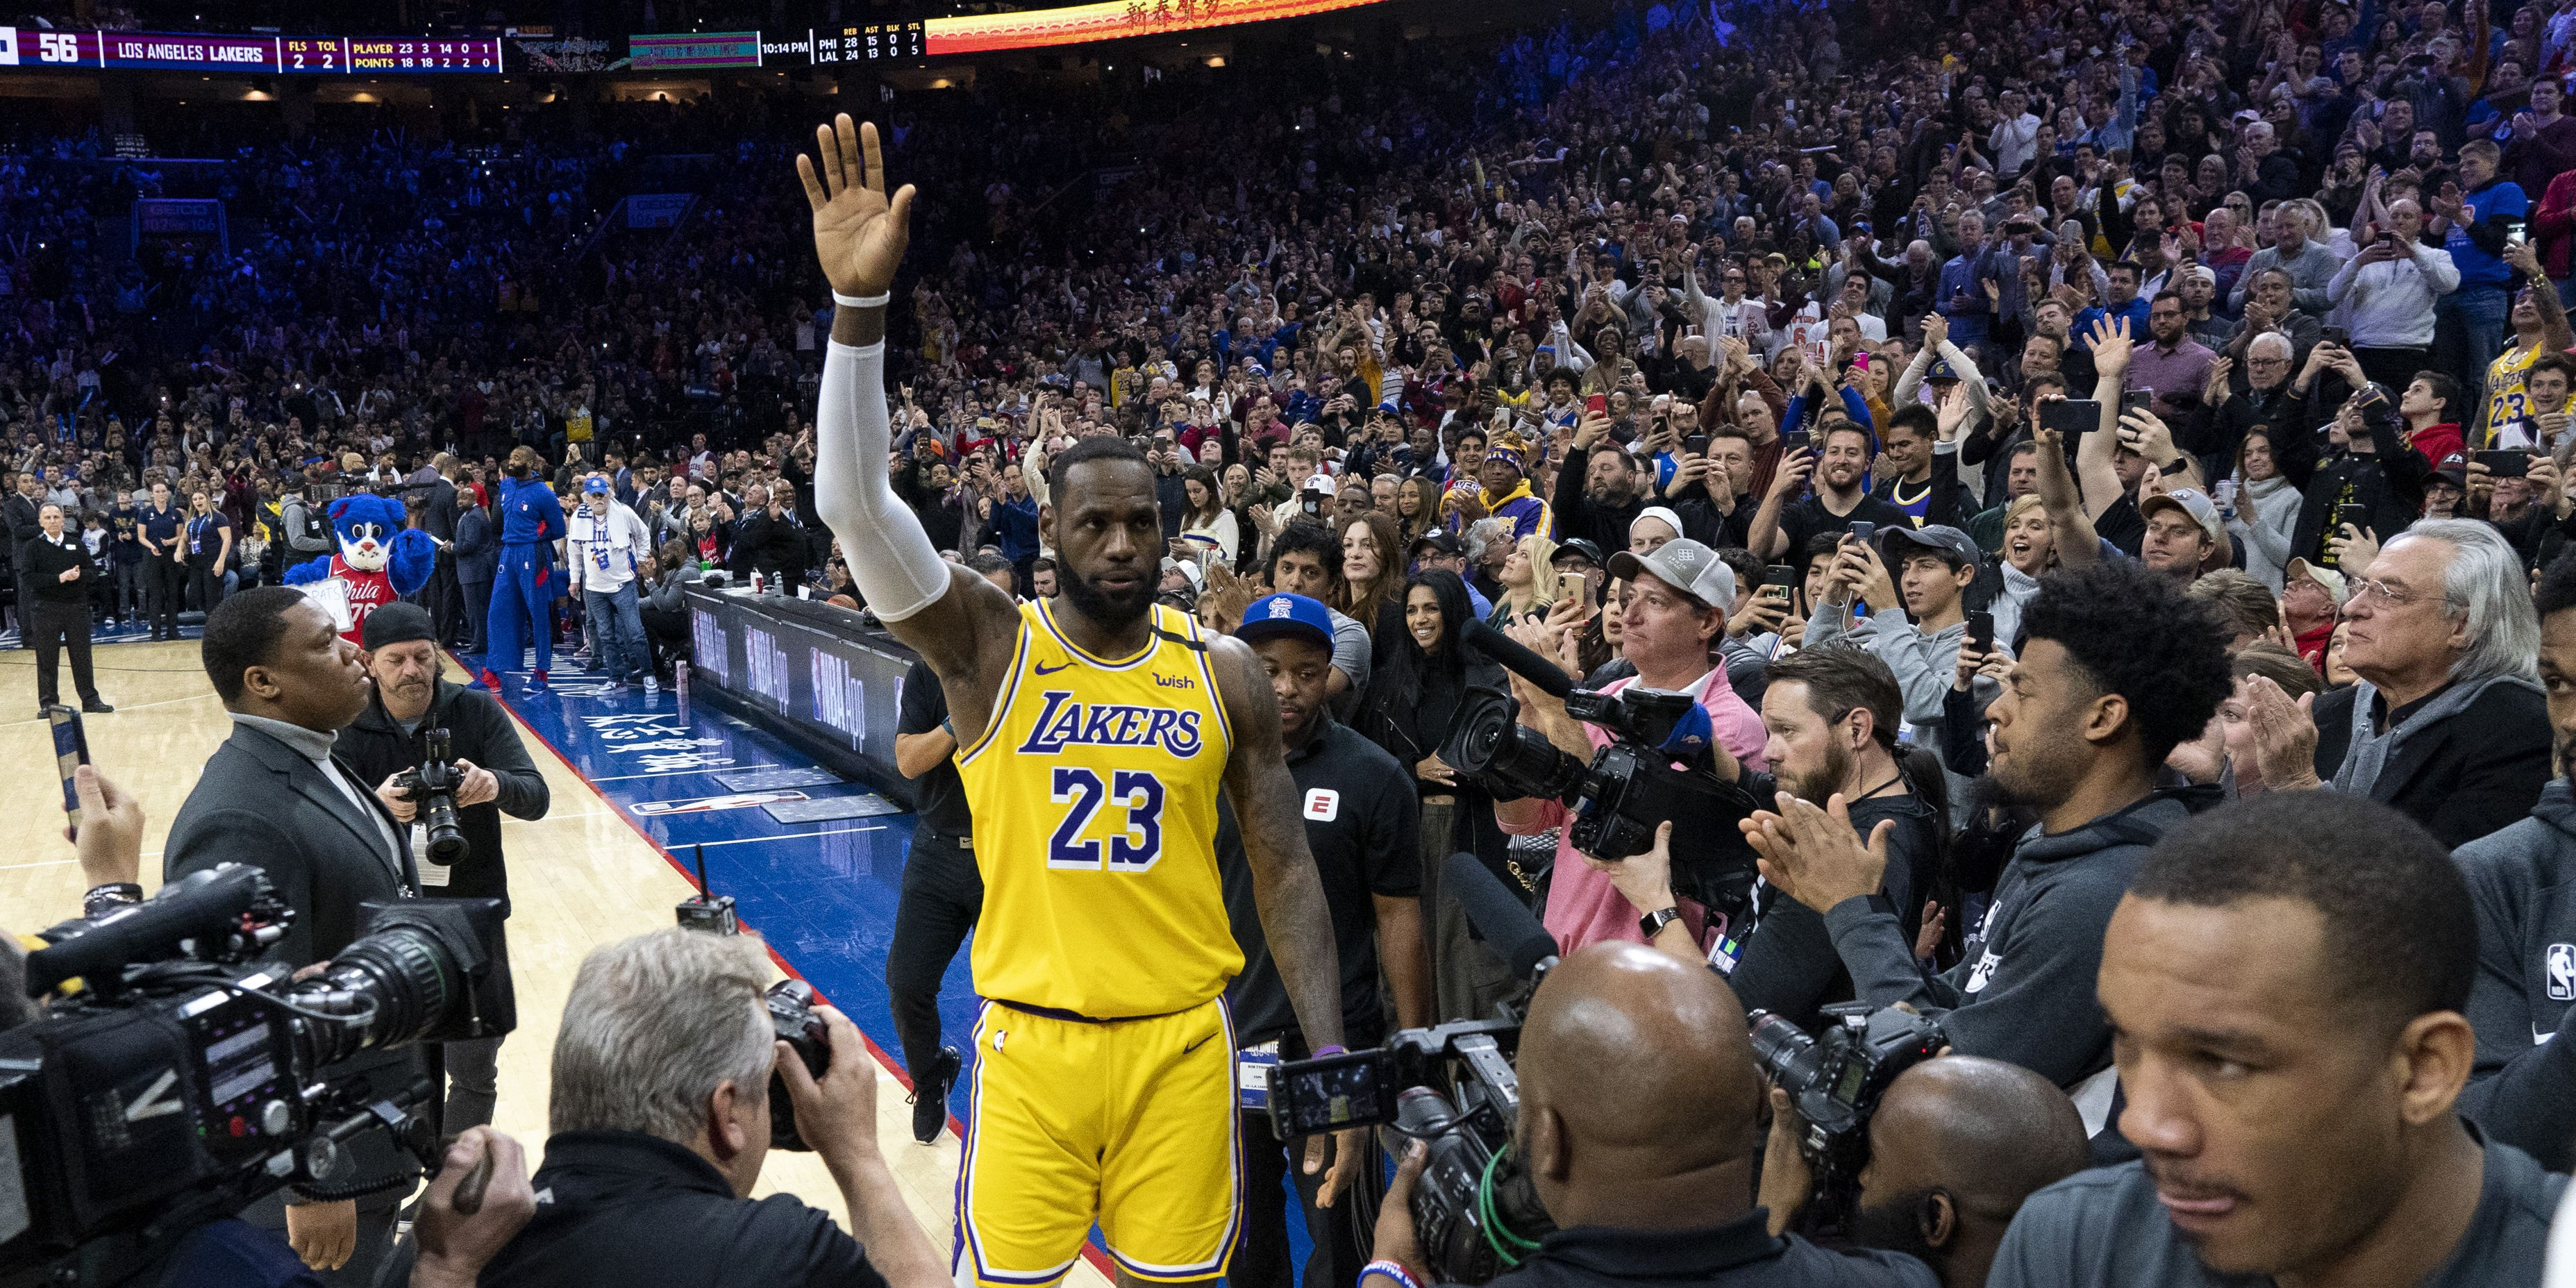 LeBron passes Kobe, now third in all-time NBA scoring